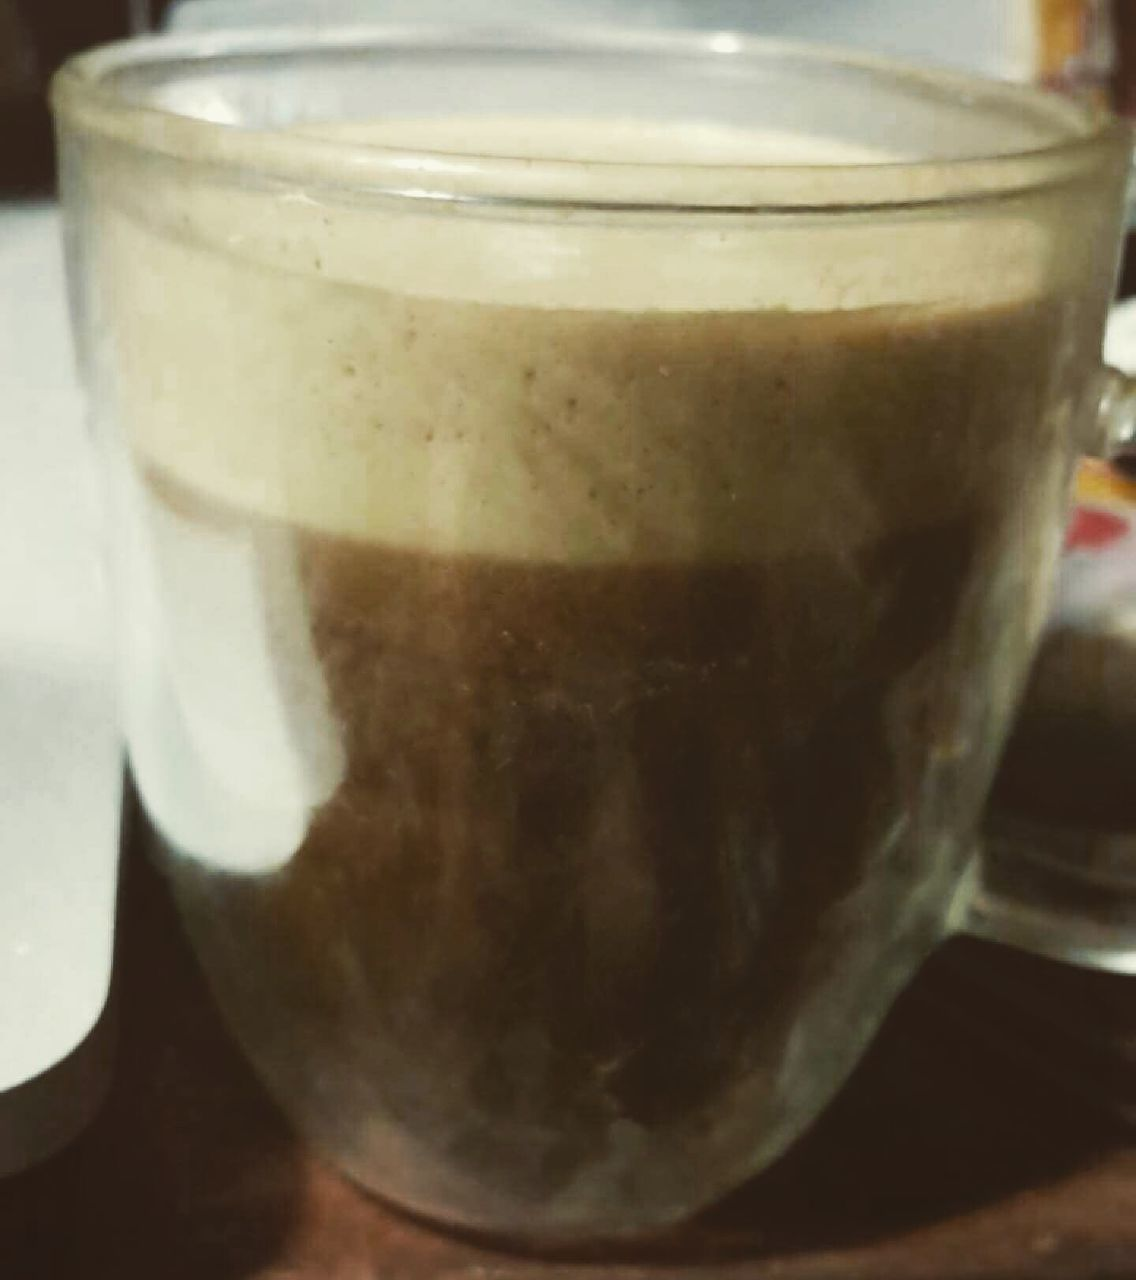 drink, food and drink, coffee - drink, refreshment, coffee cup, frothy drink, freshness, no people, close-up, latte, drinking glass, indoors, table, food, iced coffee, cappuccino, healthy eating, day, mocha, froth art